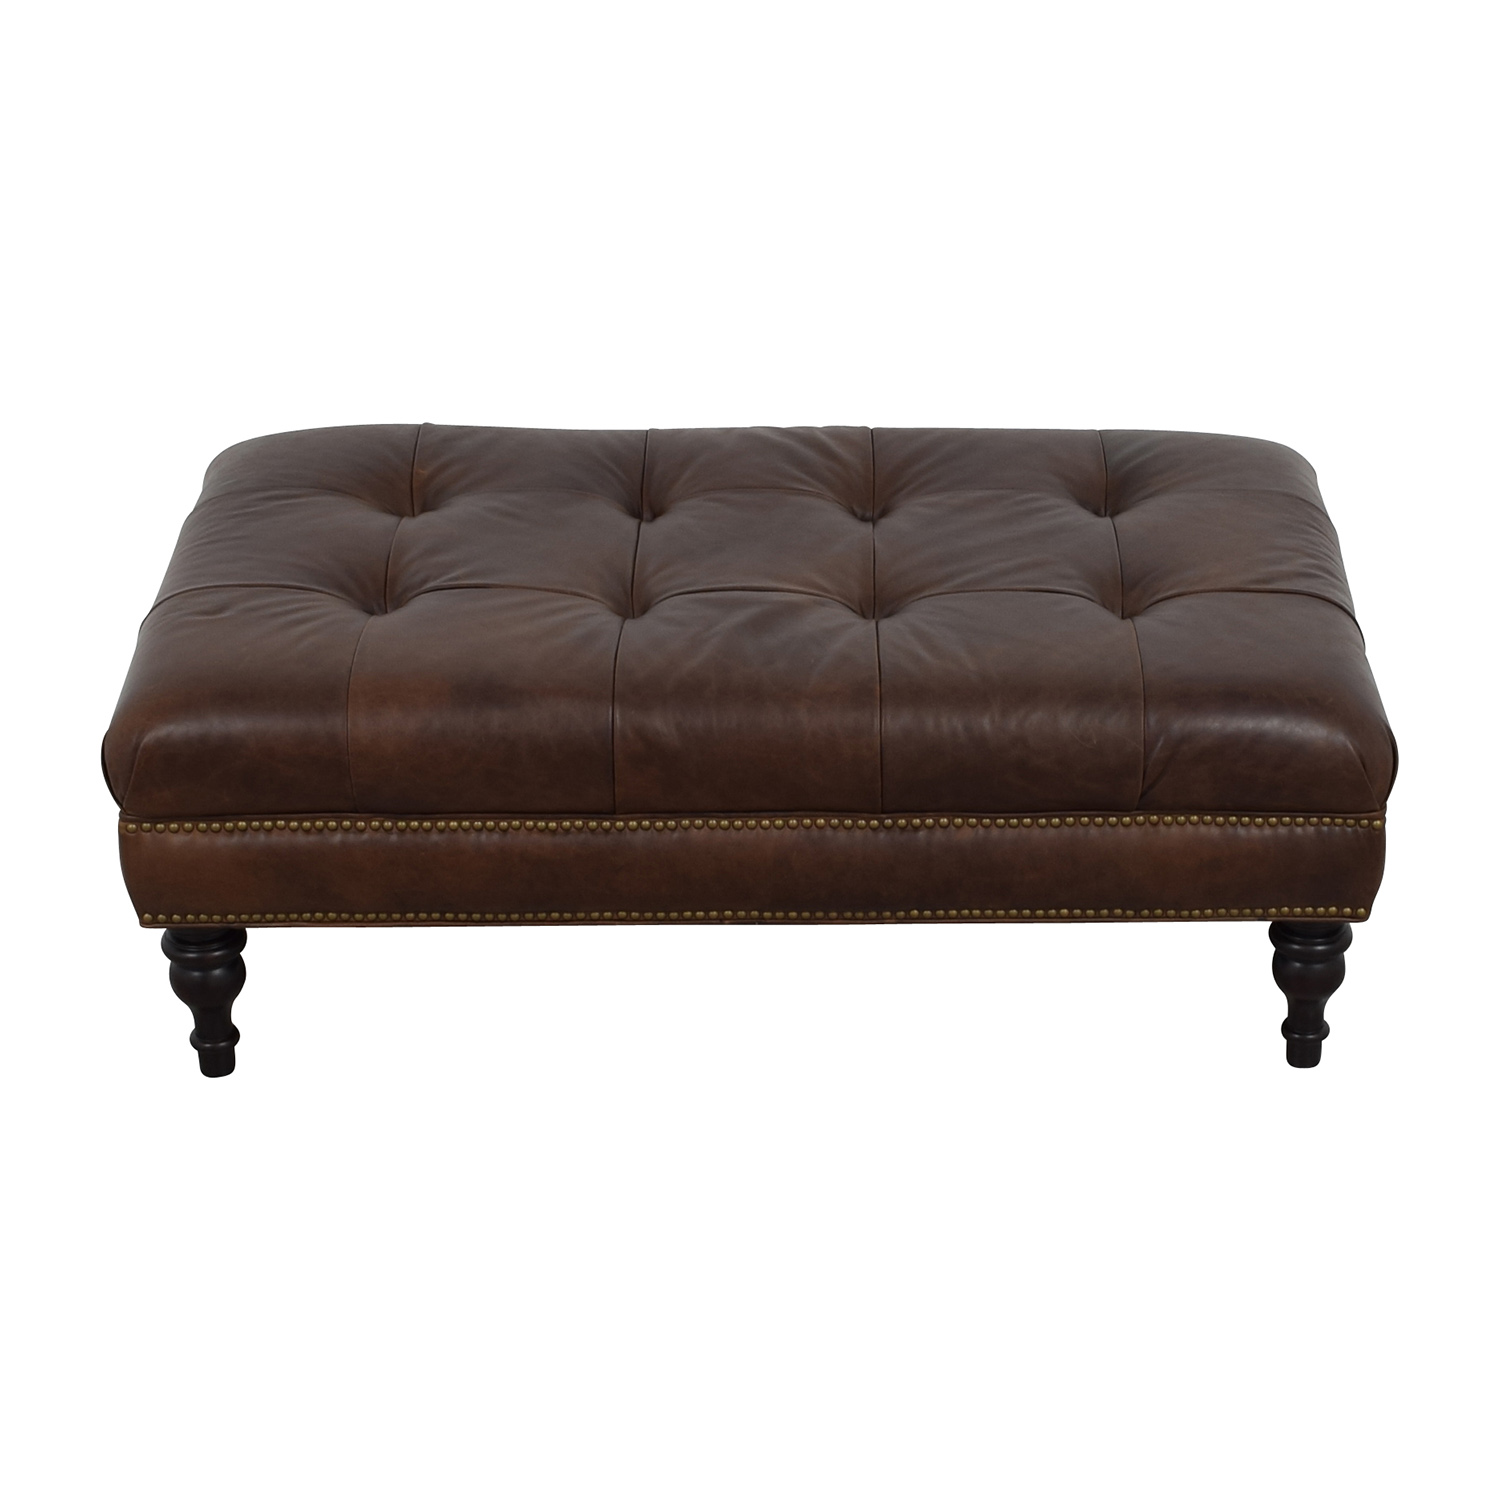 74 Off Pottery Barn Pottery Barn Martin Tufted Brown